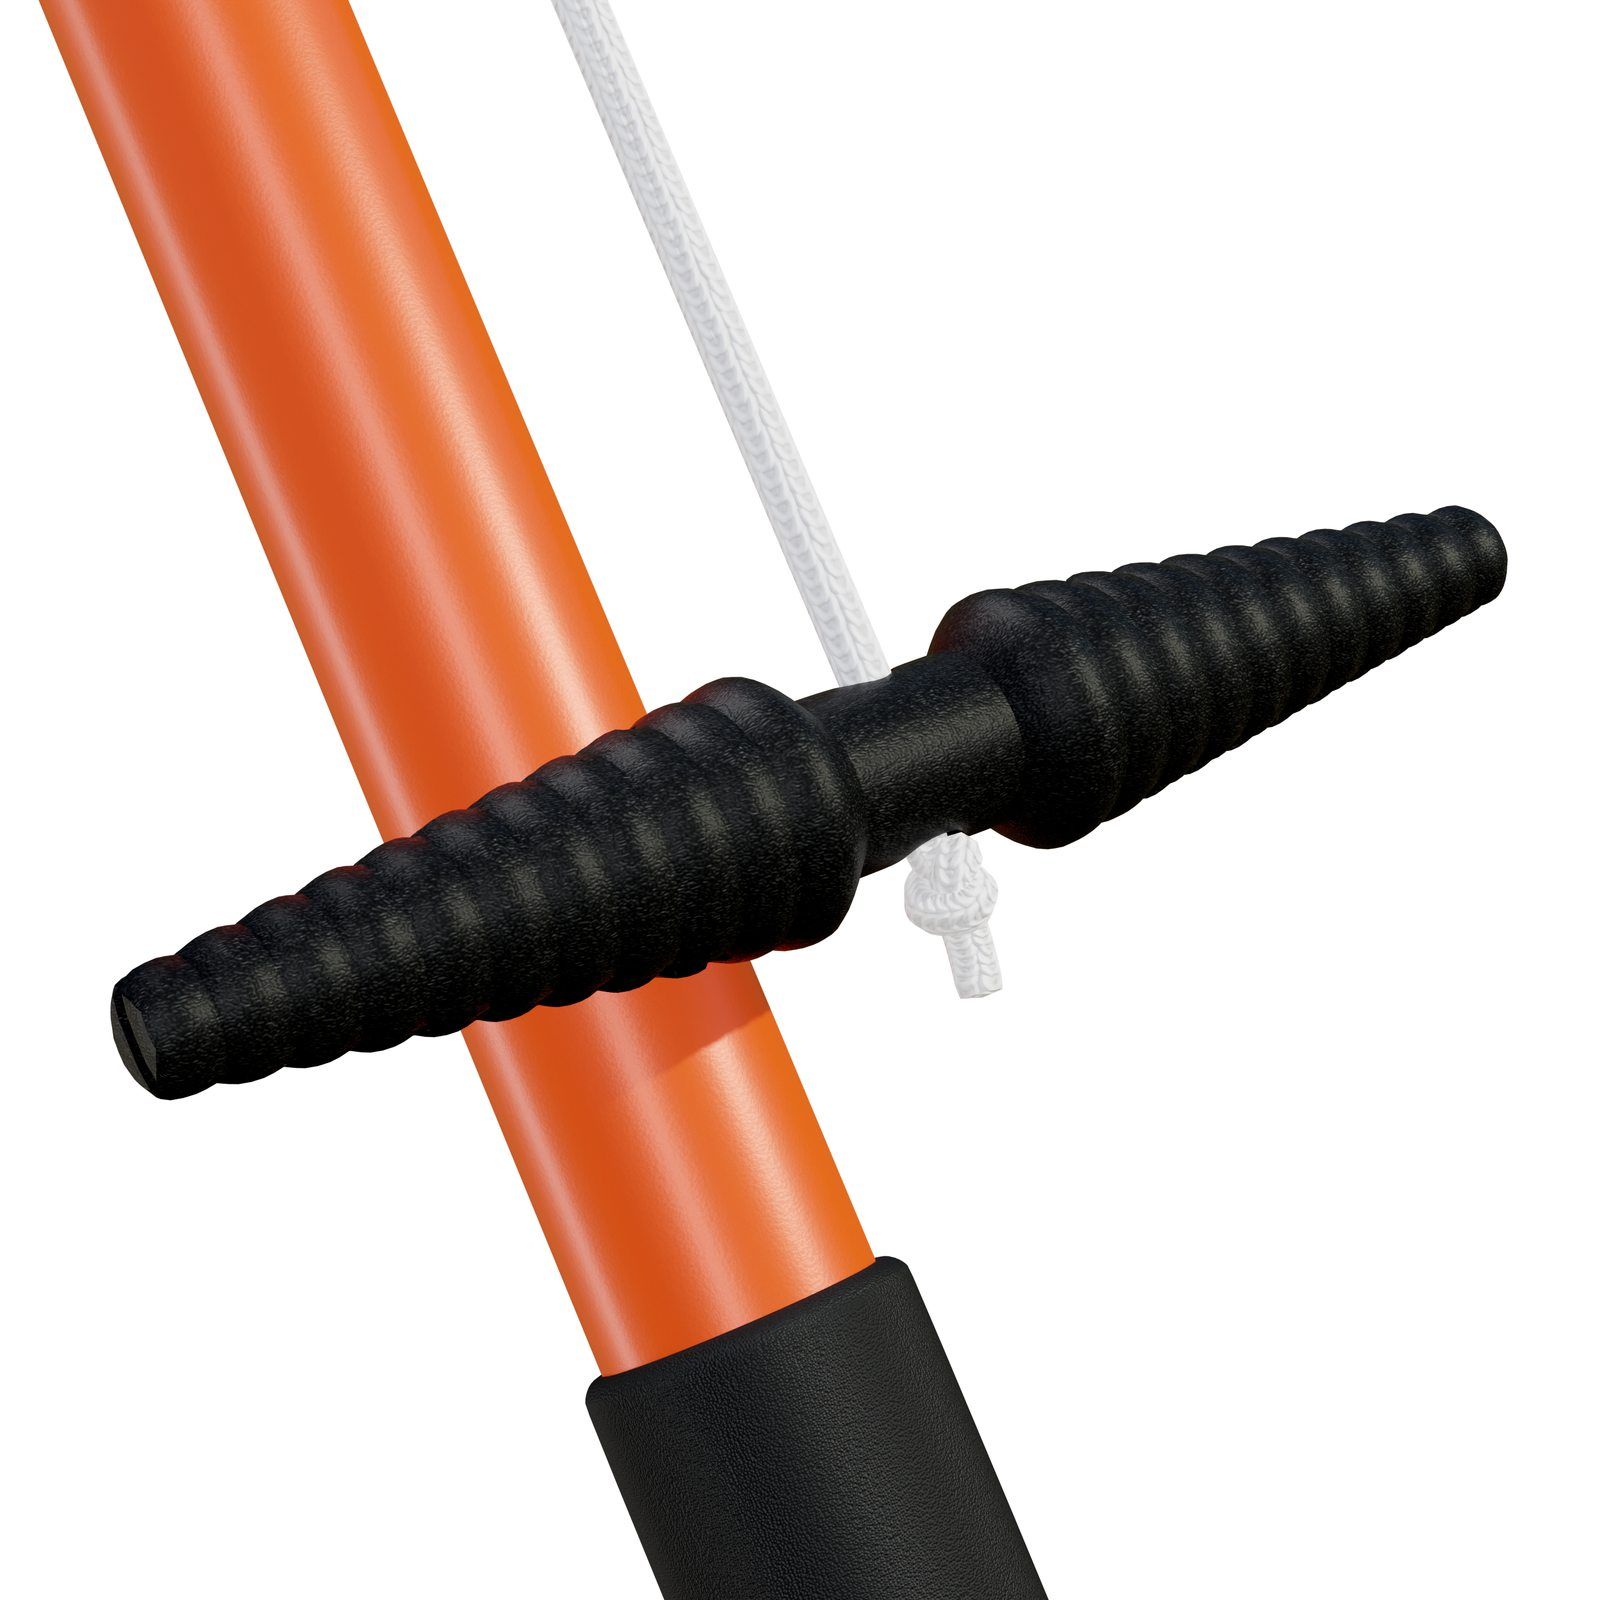 Extendable Tree Saw : Telescopic pruning saw pruner tree extendable branch